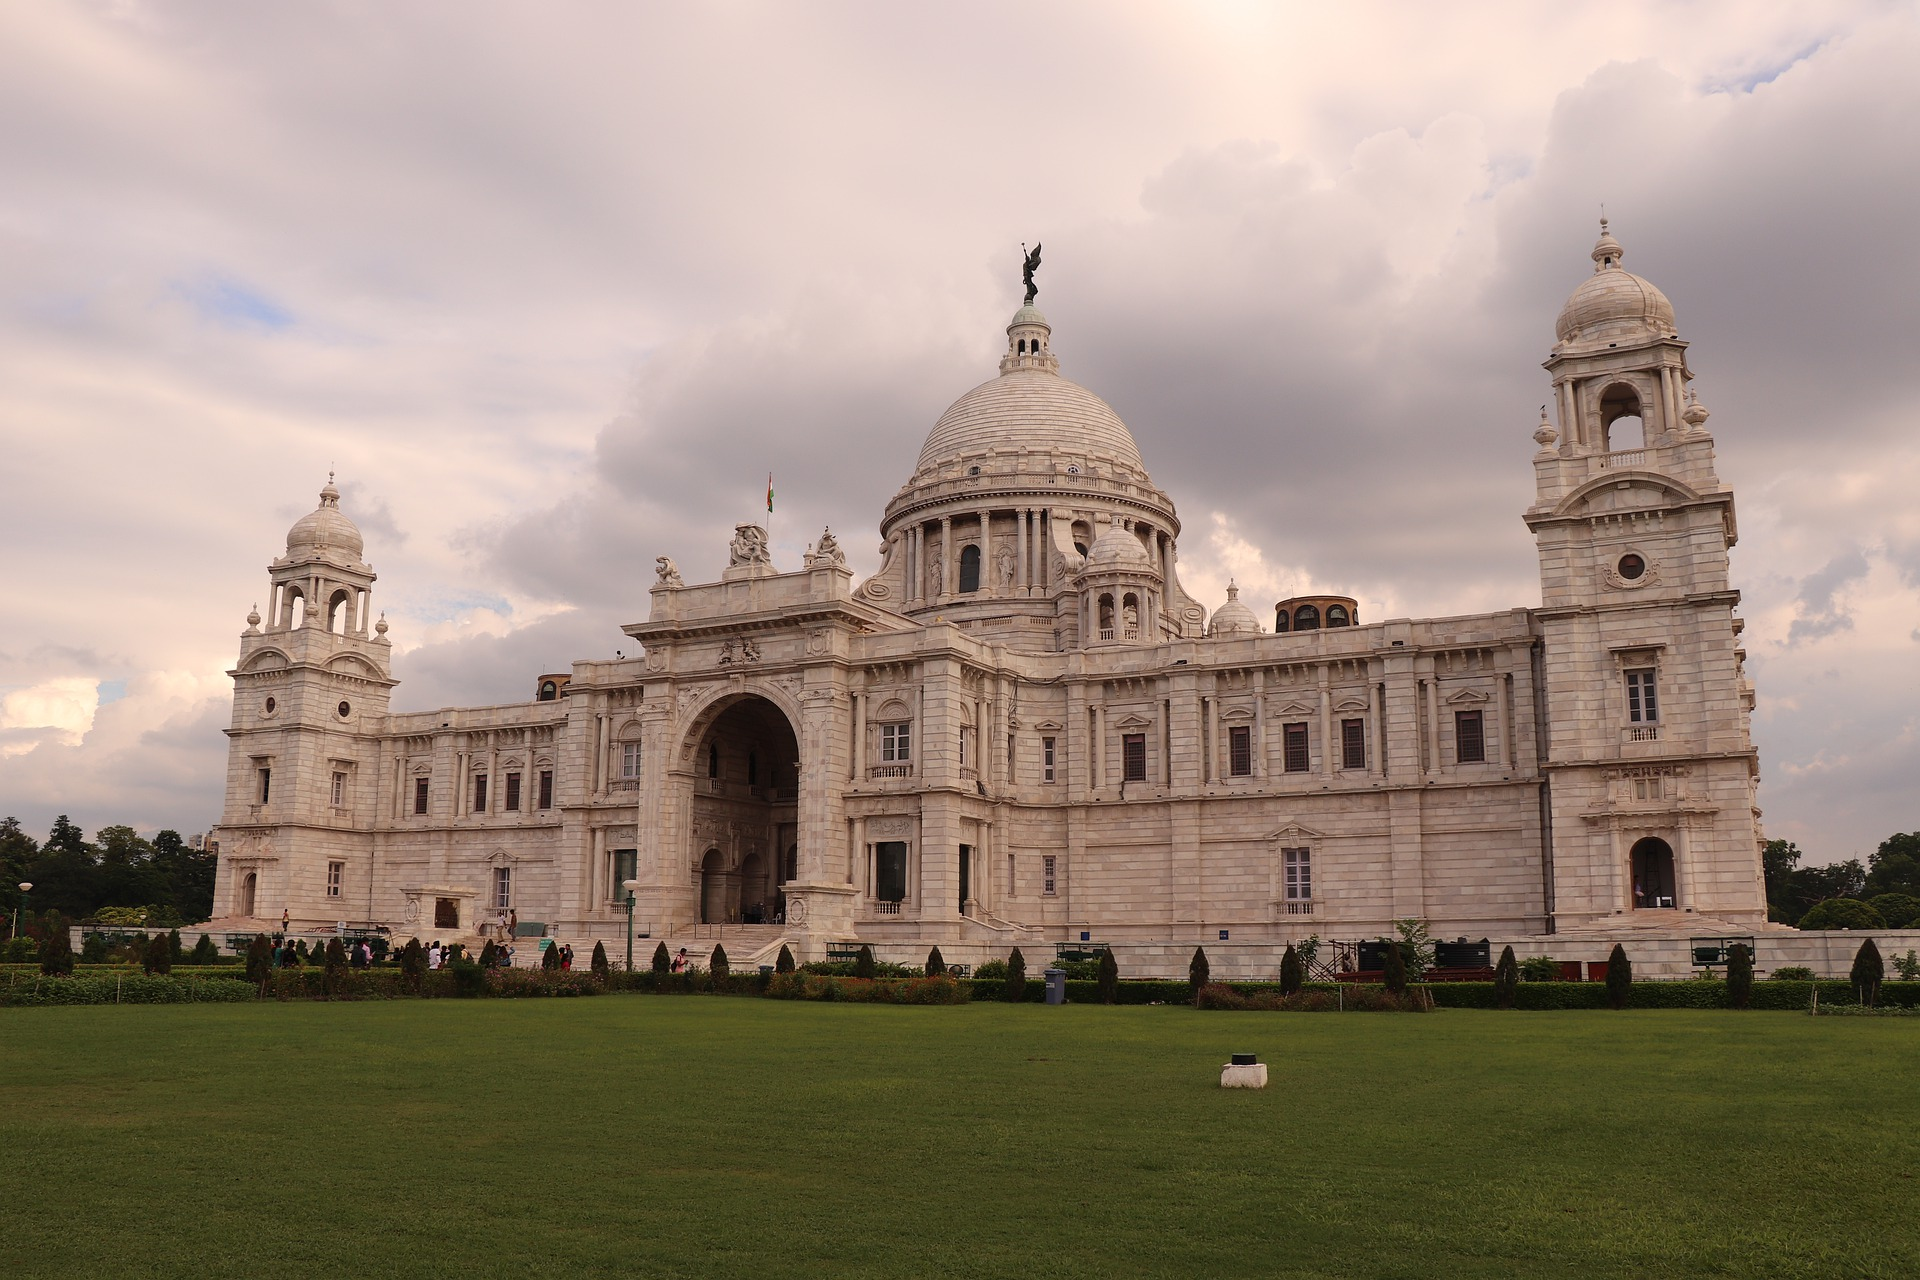 Heritage Monuments & Imperial Cities in India 3